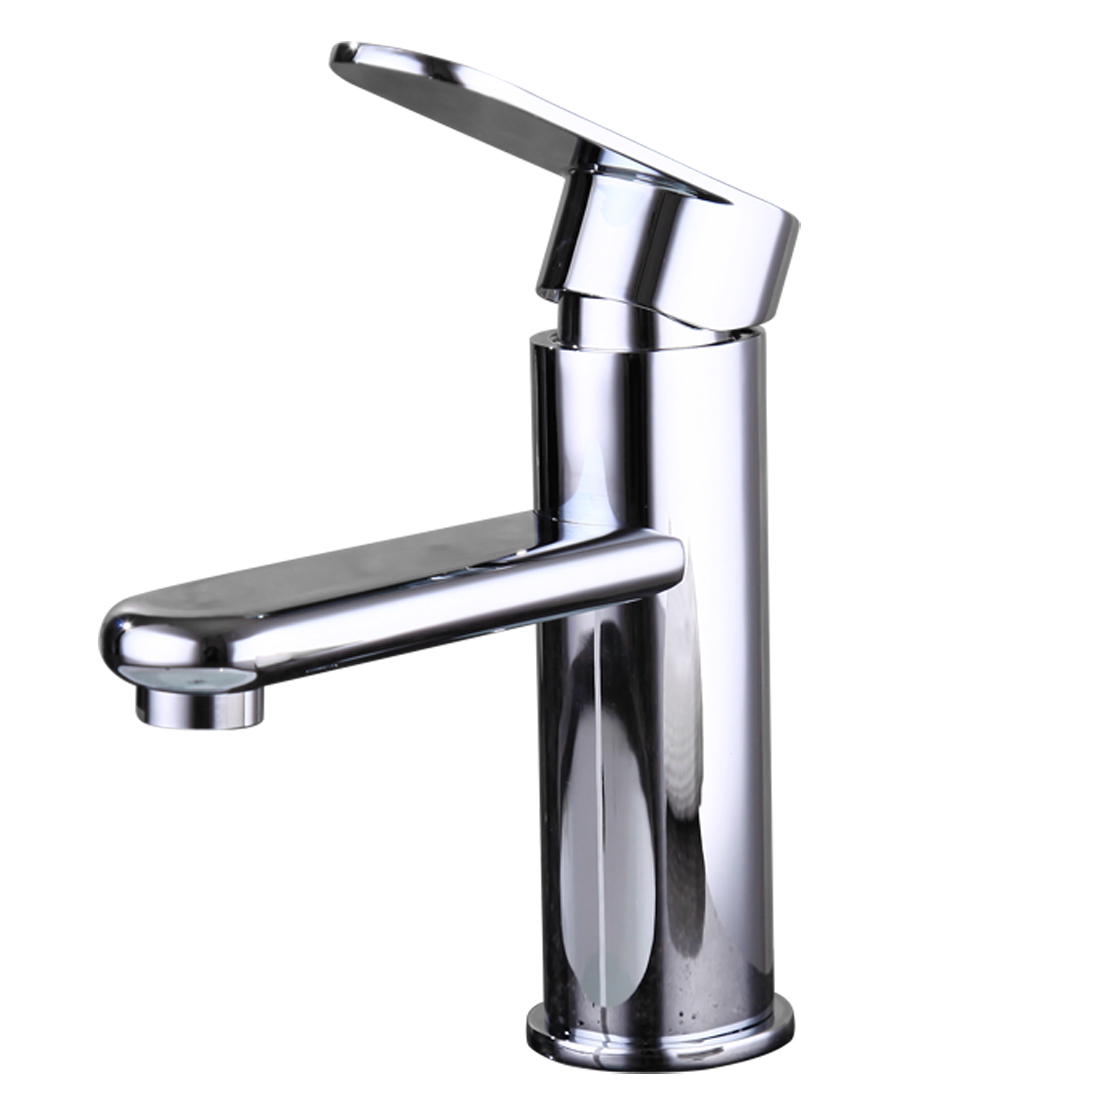 Kitchen-Faucet-One-Handle-Spray-Swivel-Sink-Tap-Brushed-Nickel-Bar ...